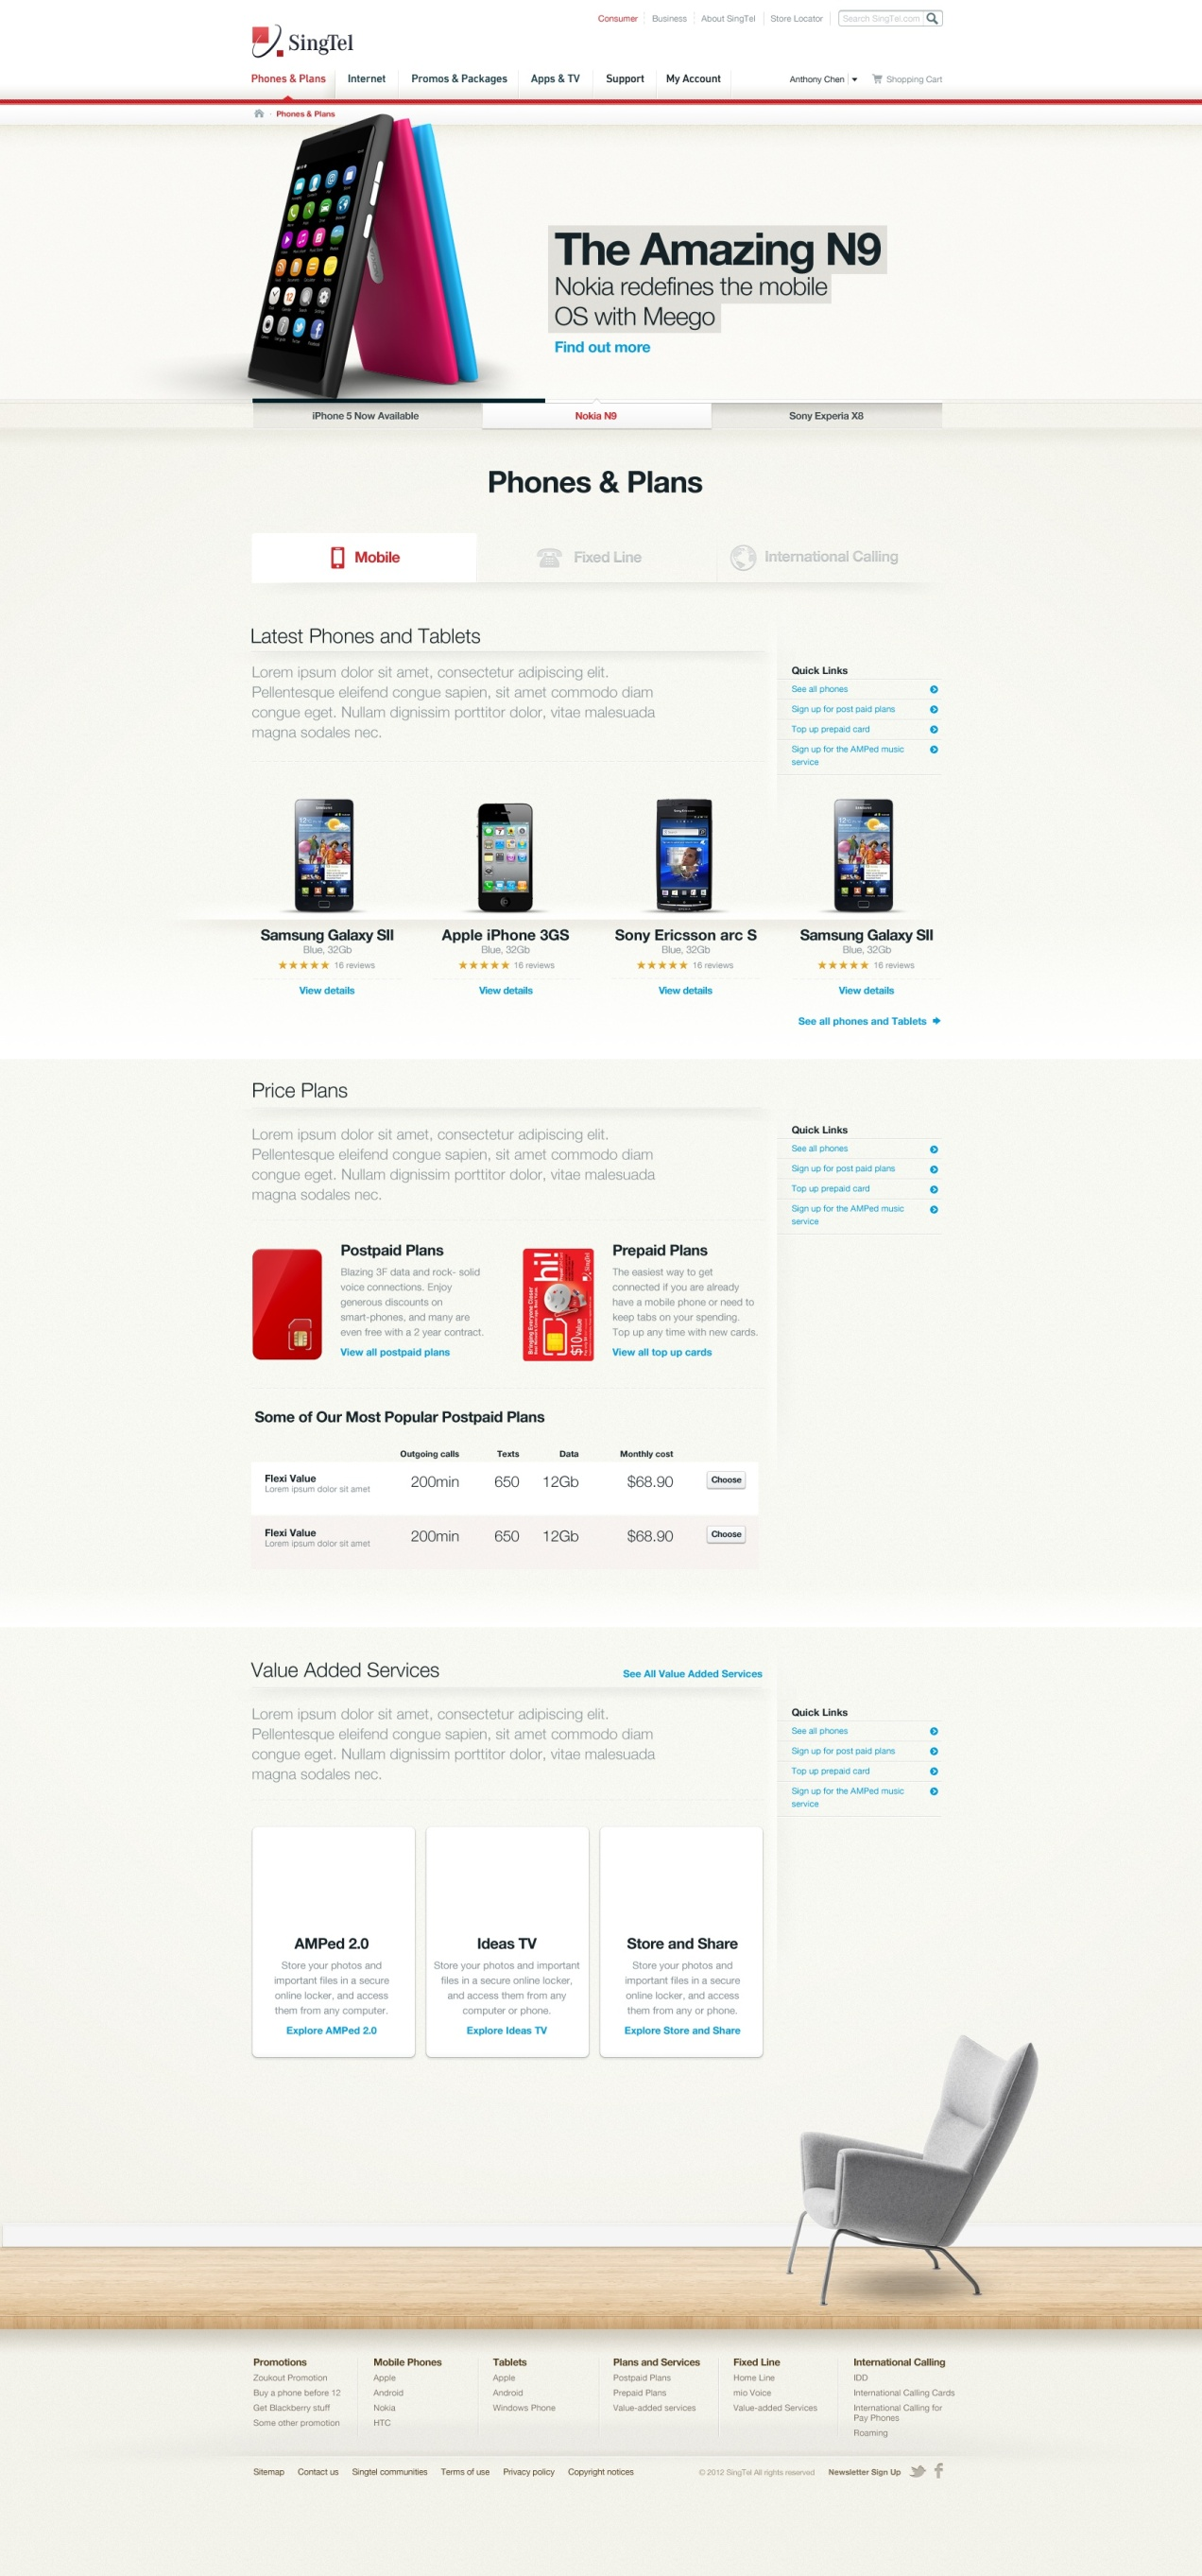 Landing page for mobile phones and plans